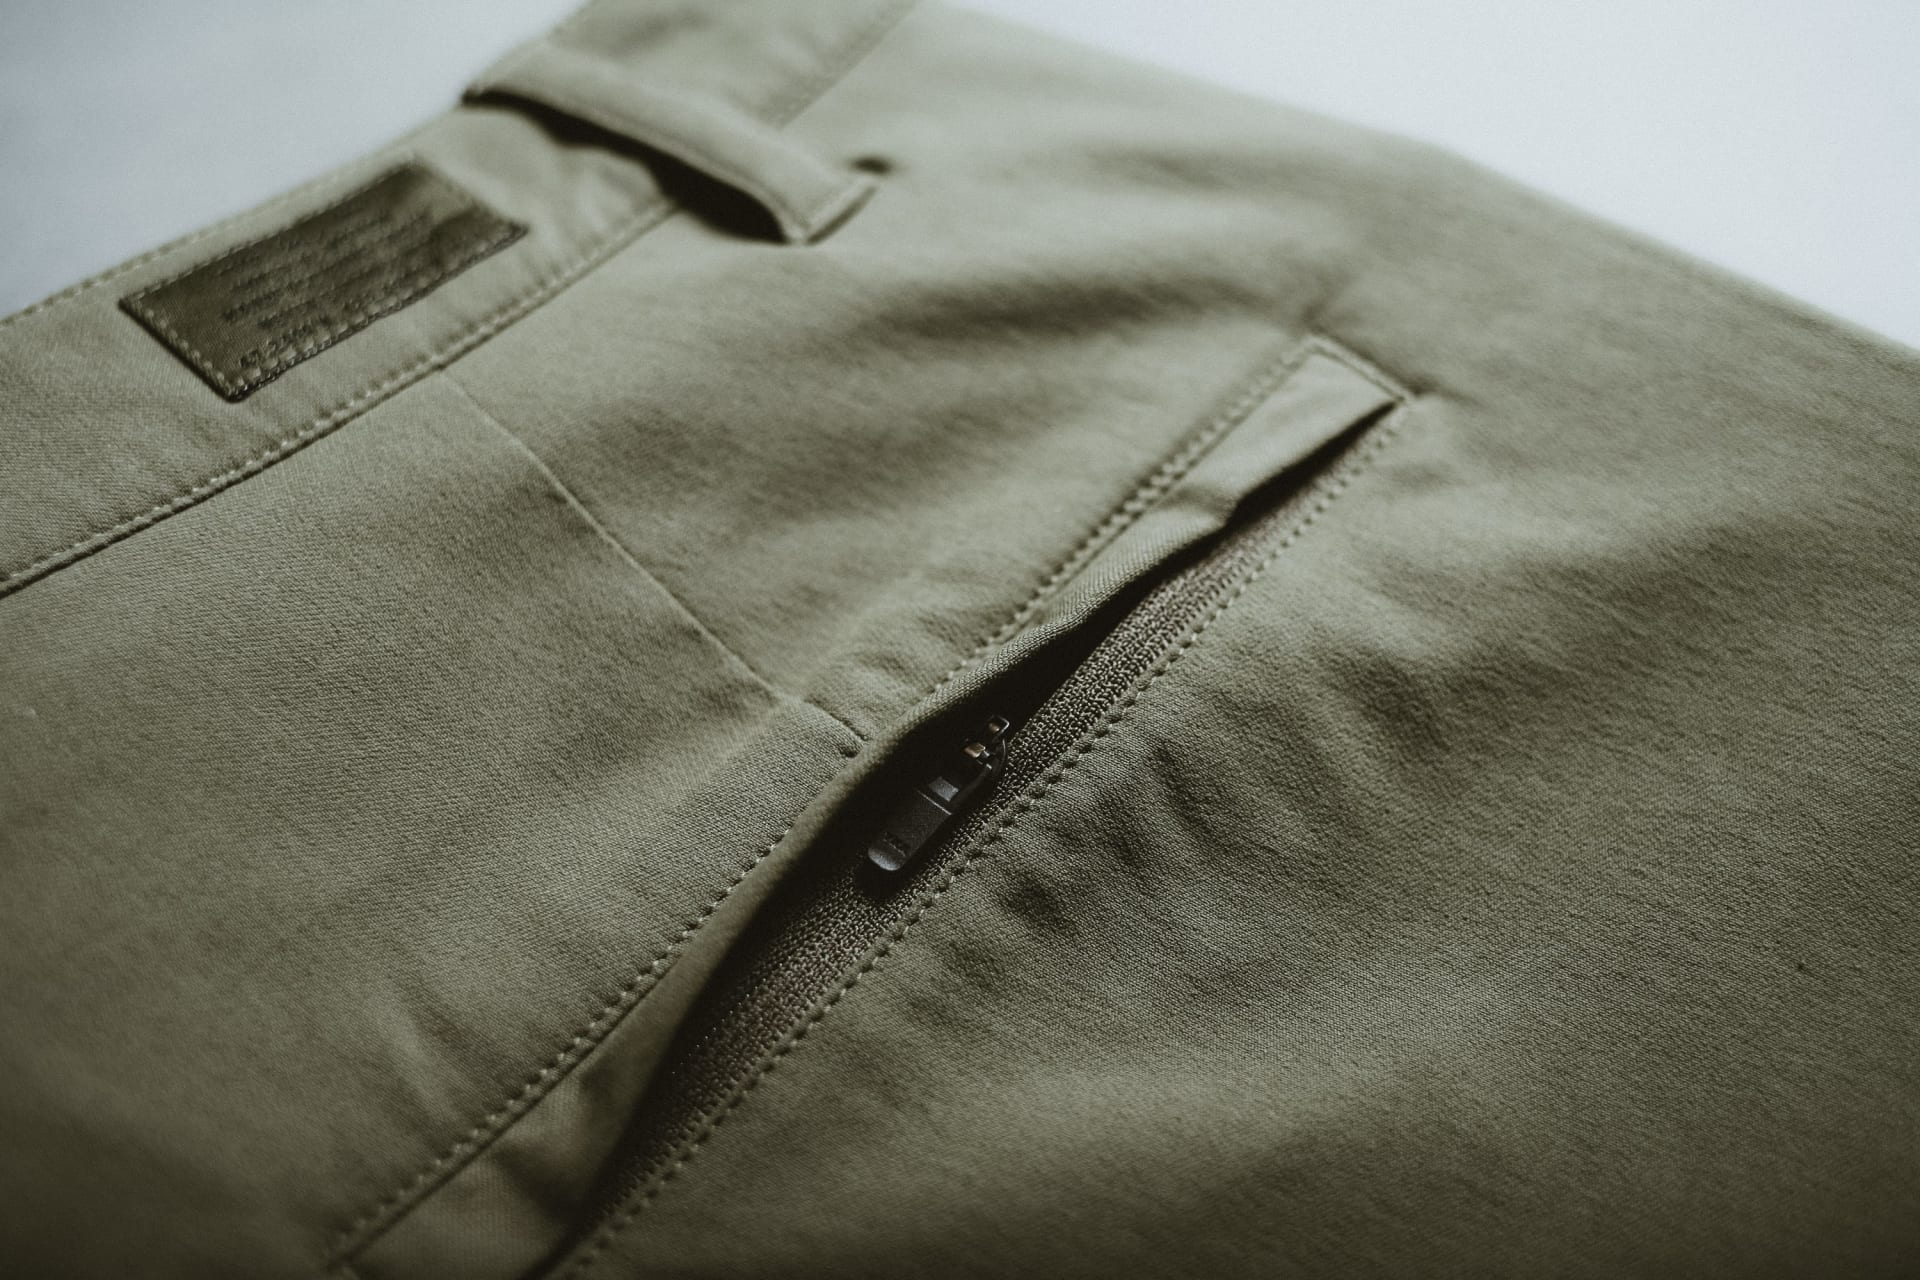 YKK Zippered Secure Back Pocket